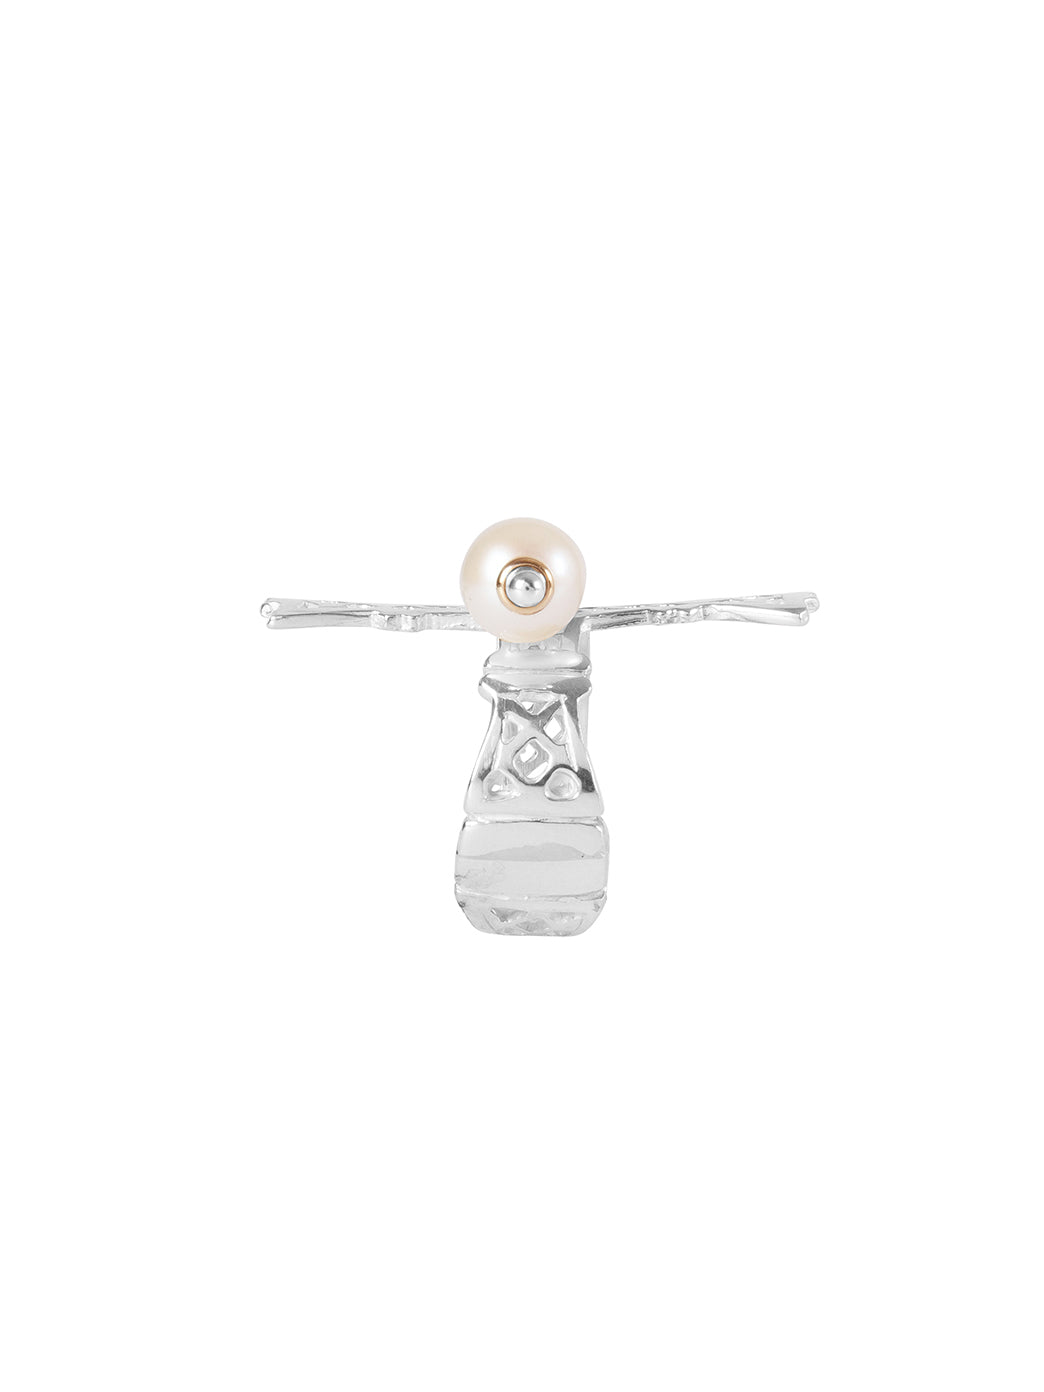 Fiorina Jewellery Lacroix Ring Pearl Side View